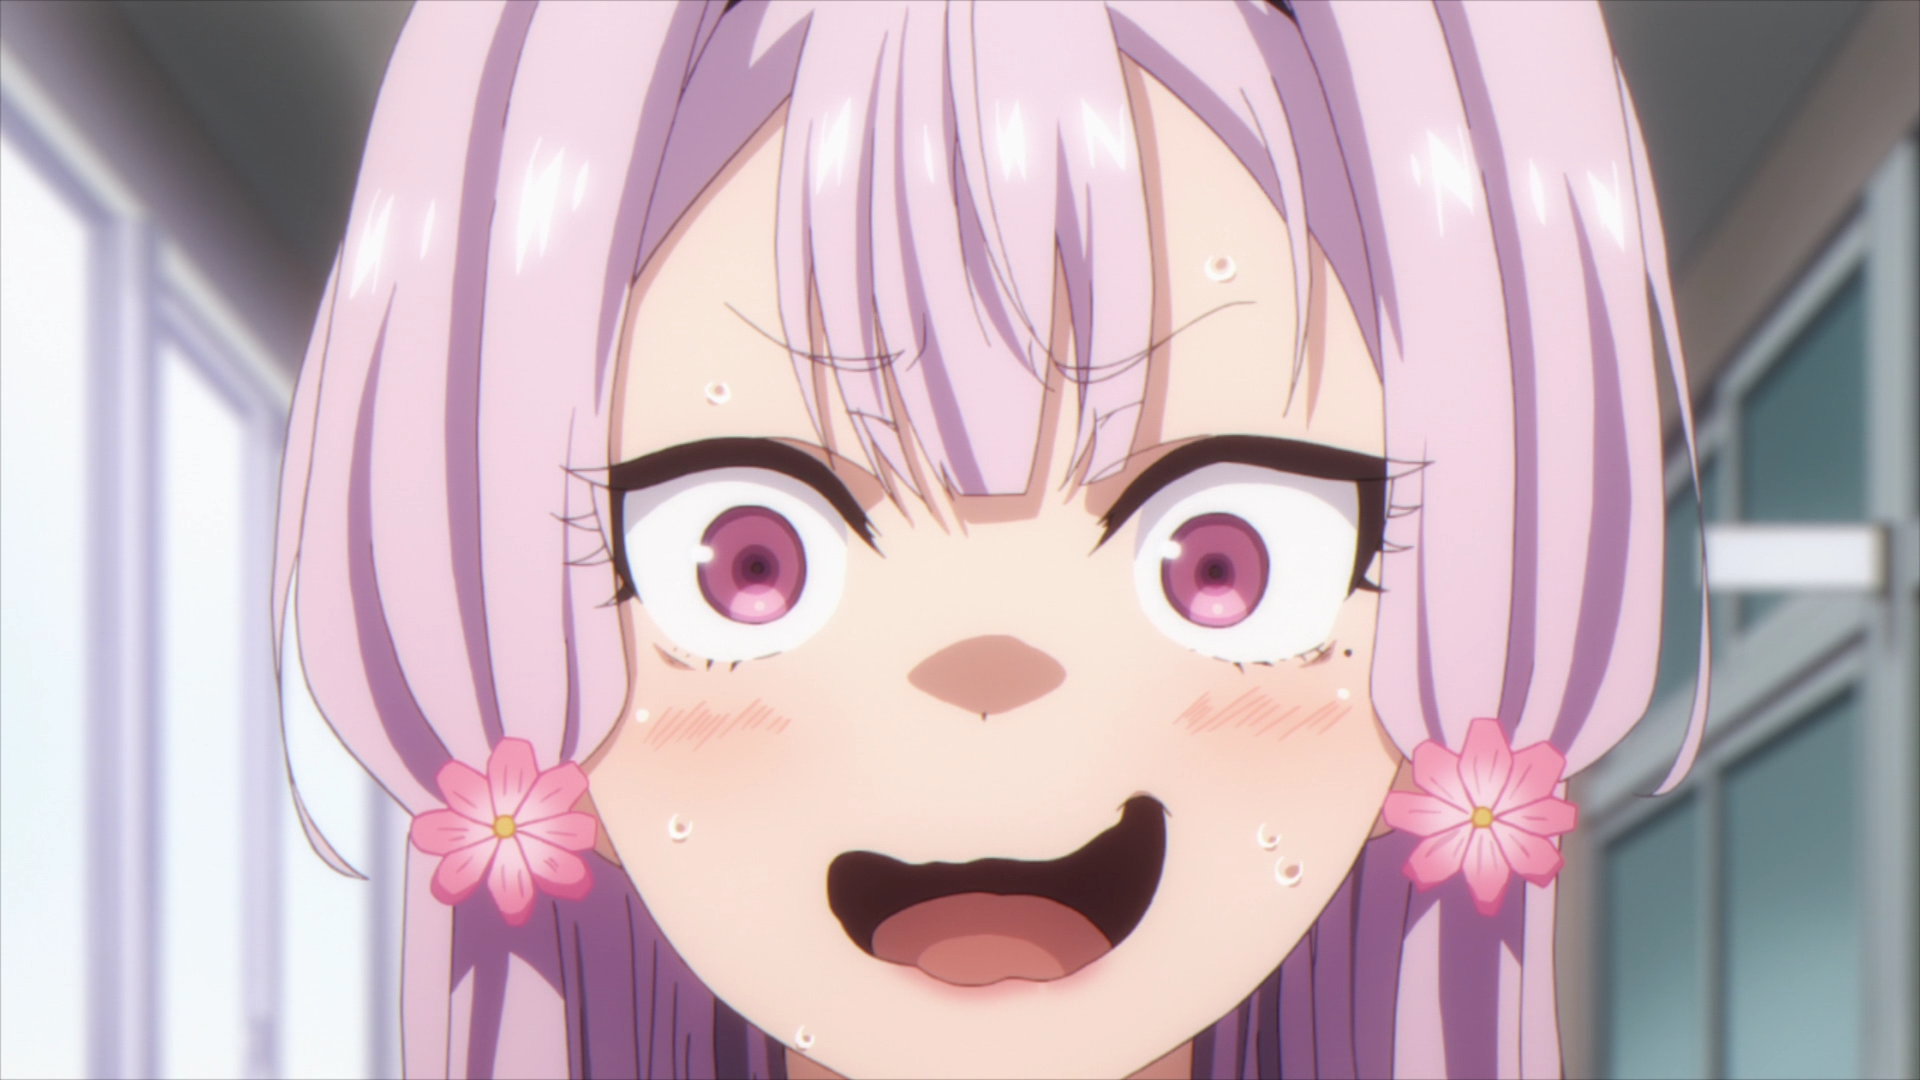 closeup of a girl with pink hair smiling nervously